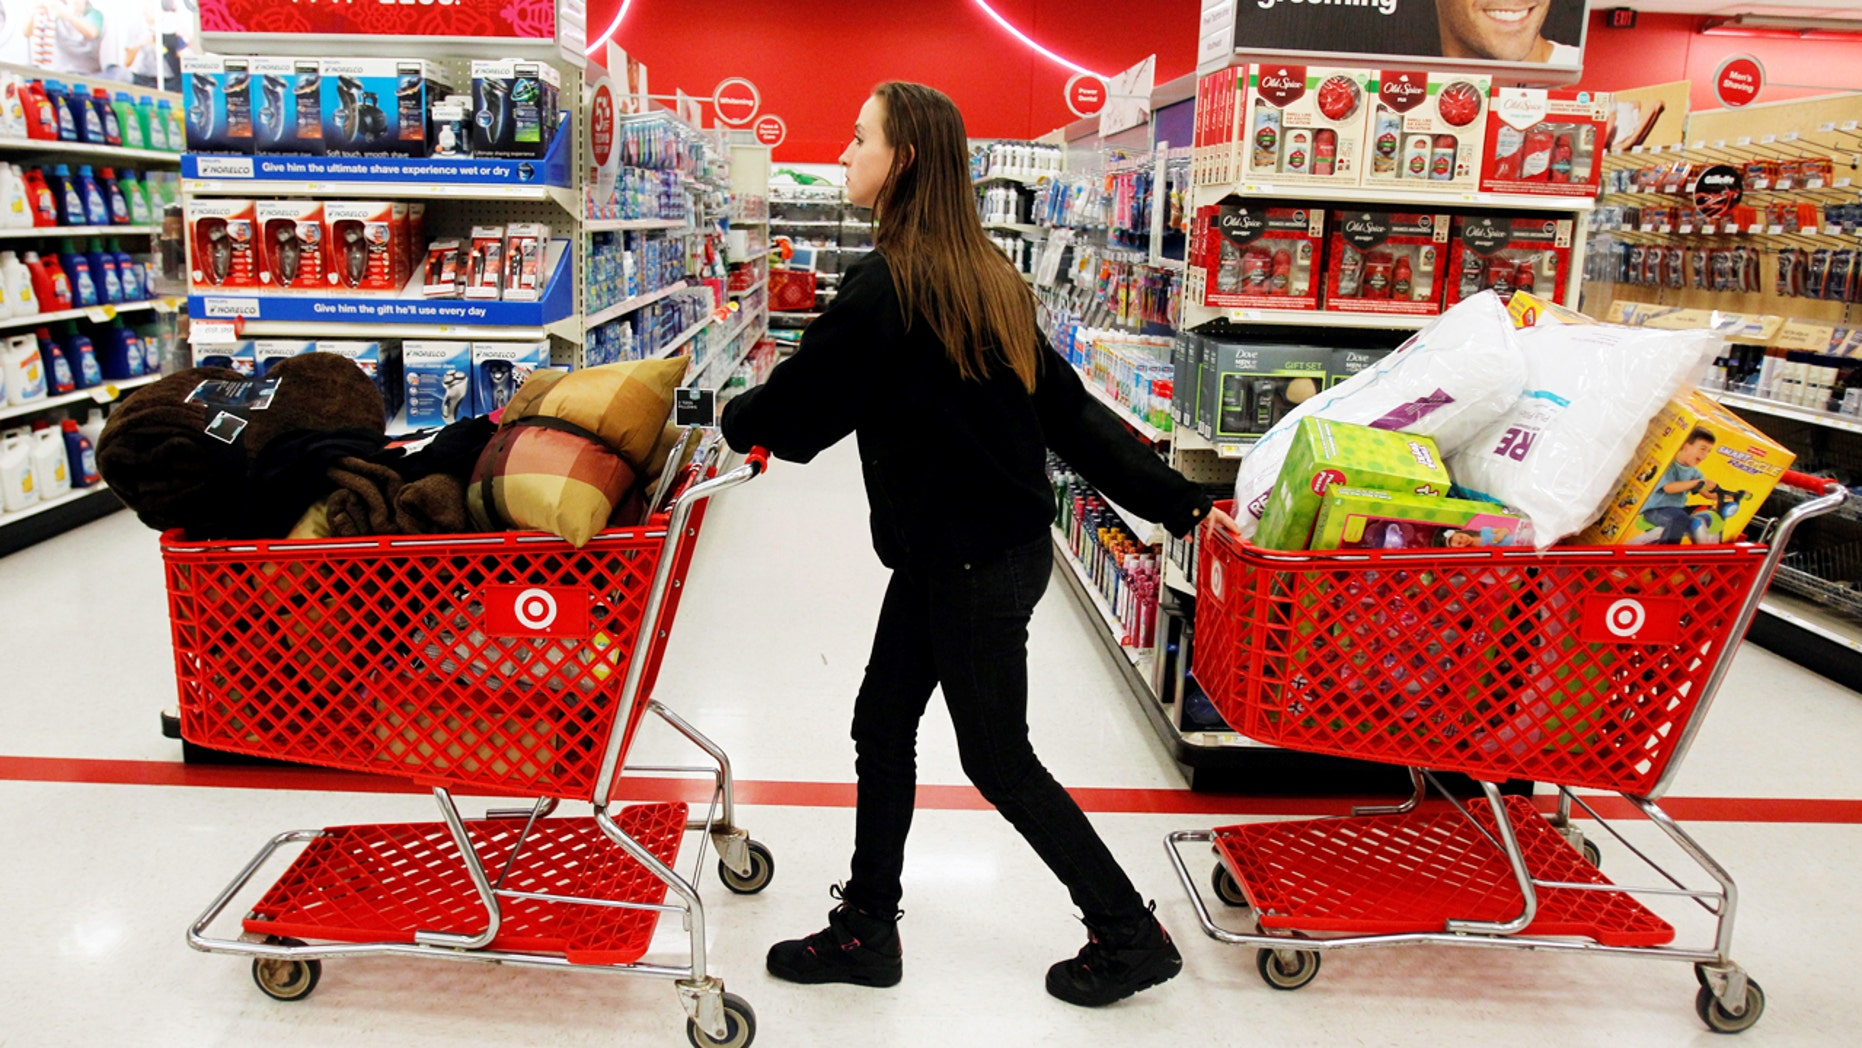 Do your shopping carts look like this after a few hours at Target?